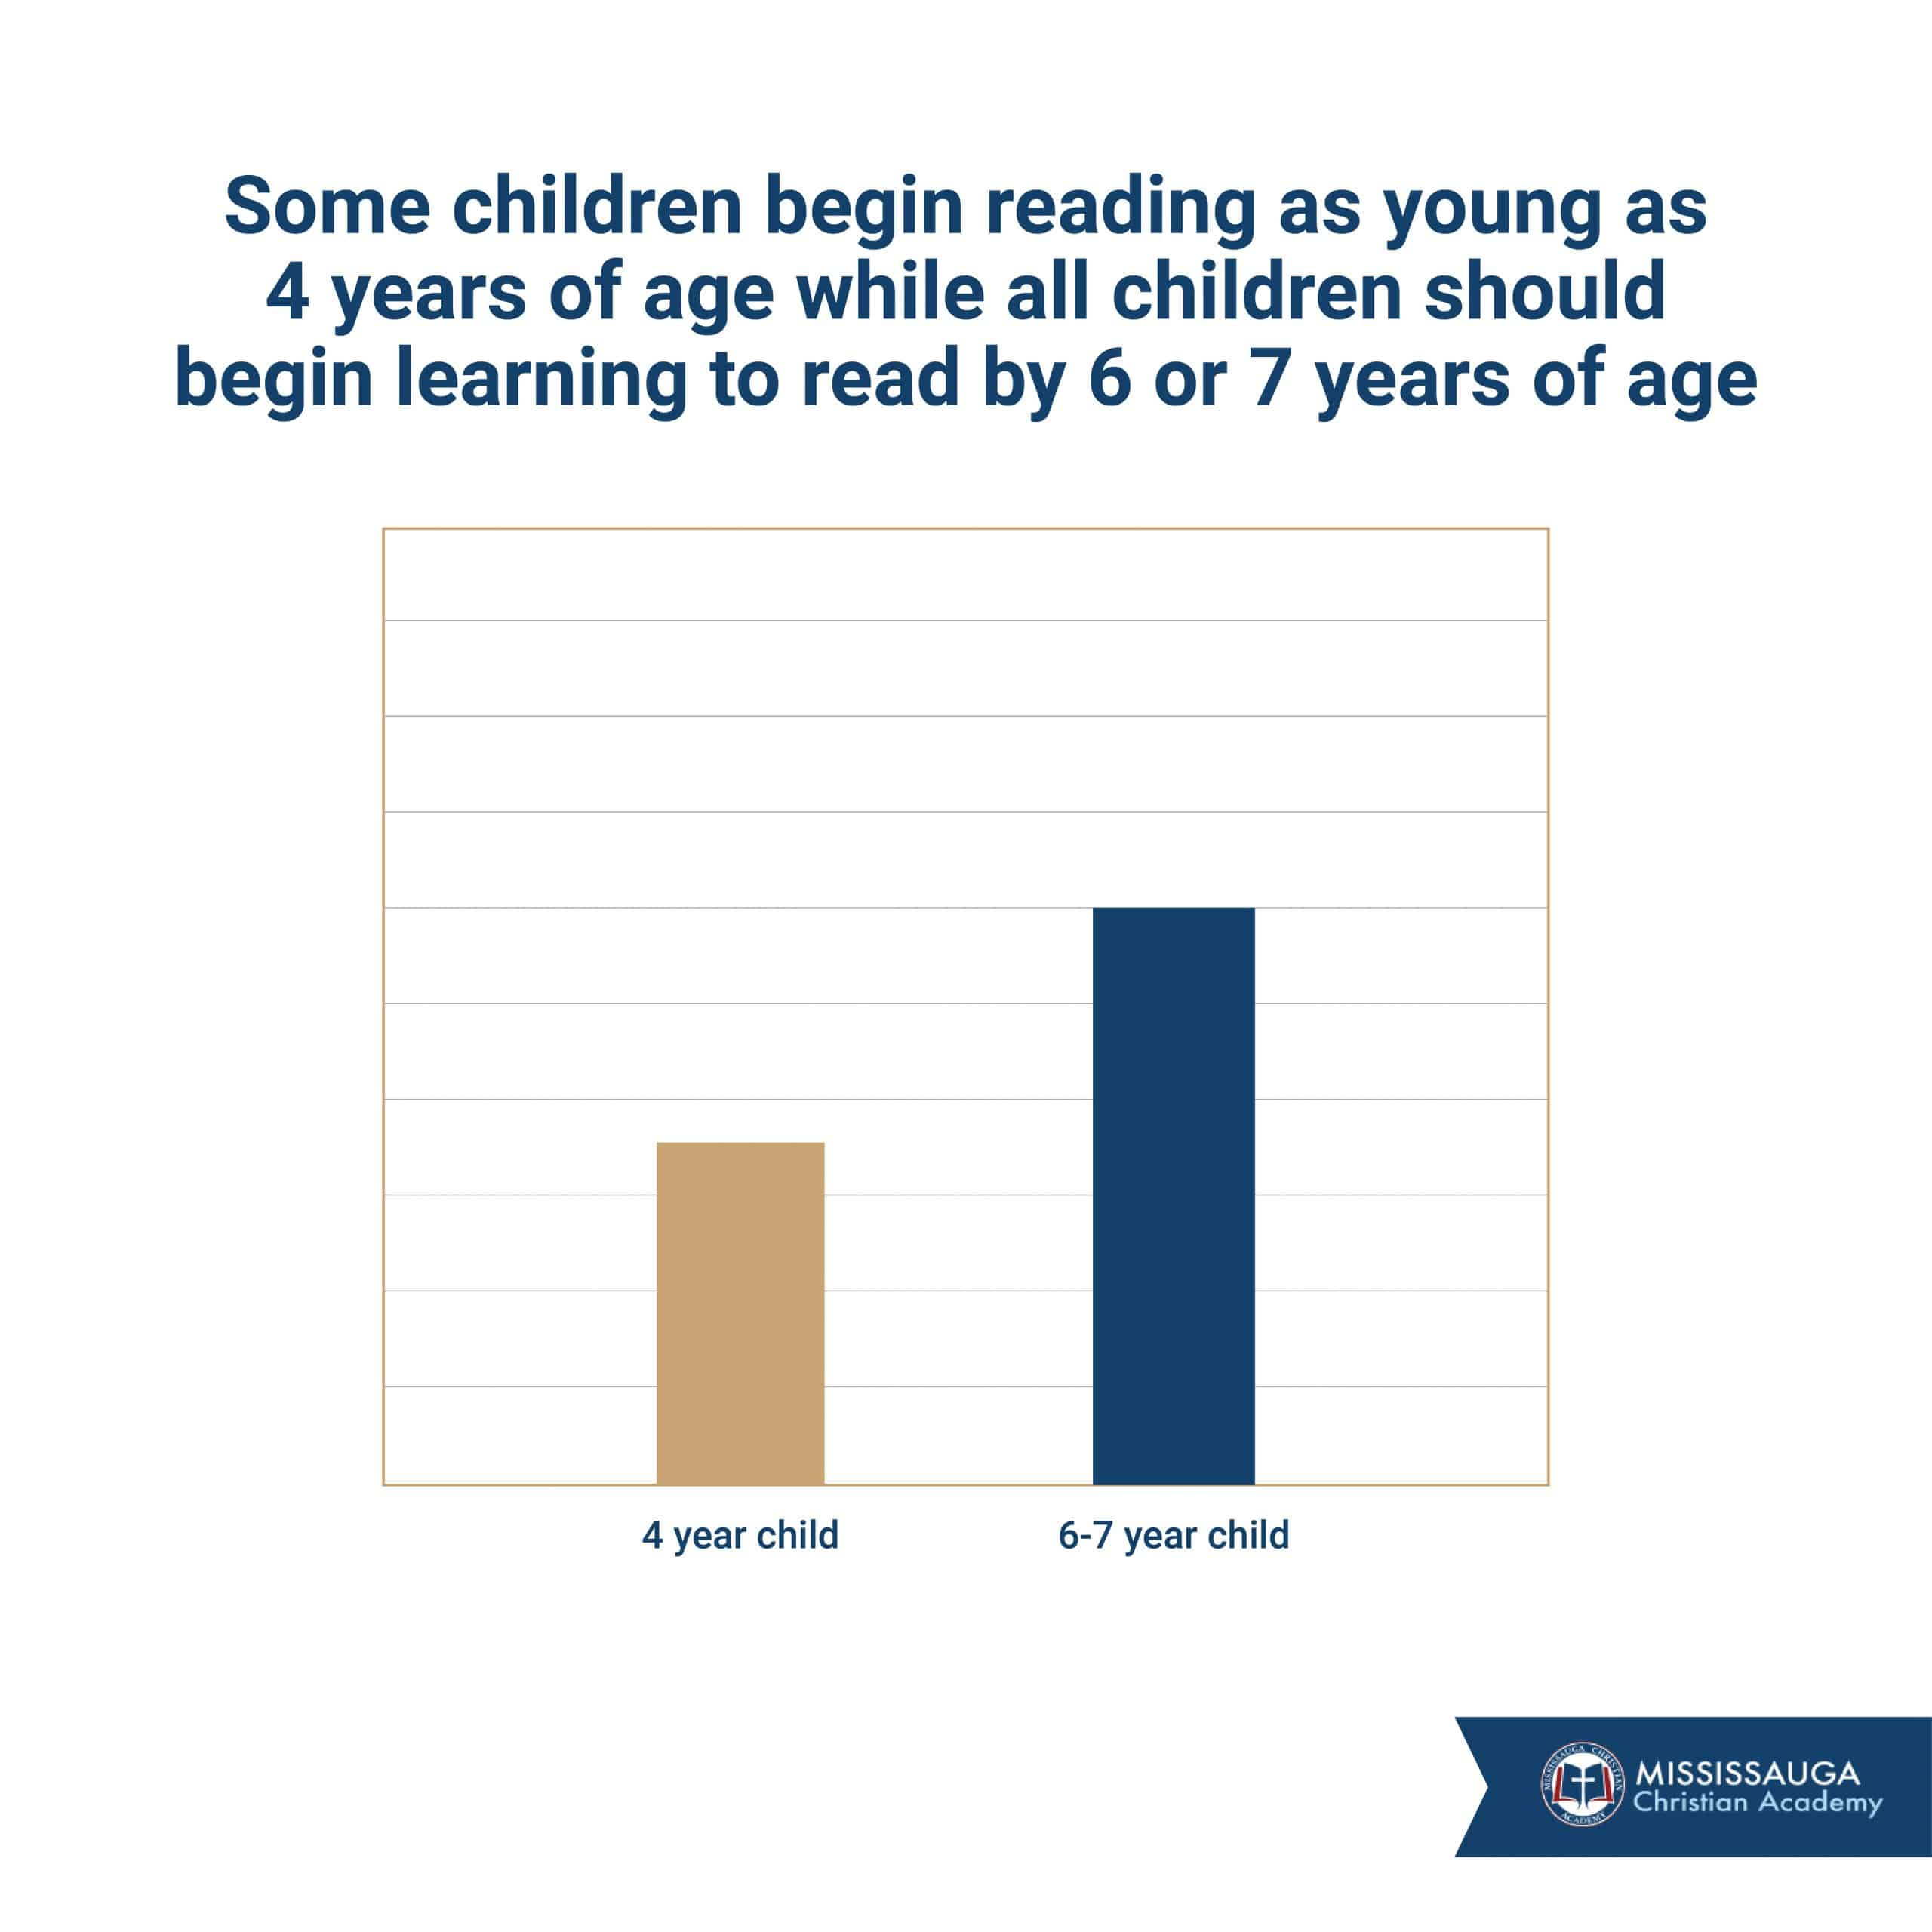 some children learning to read at age 4 while most children begin learning to read by 6 or 7 years of age